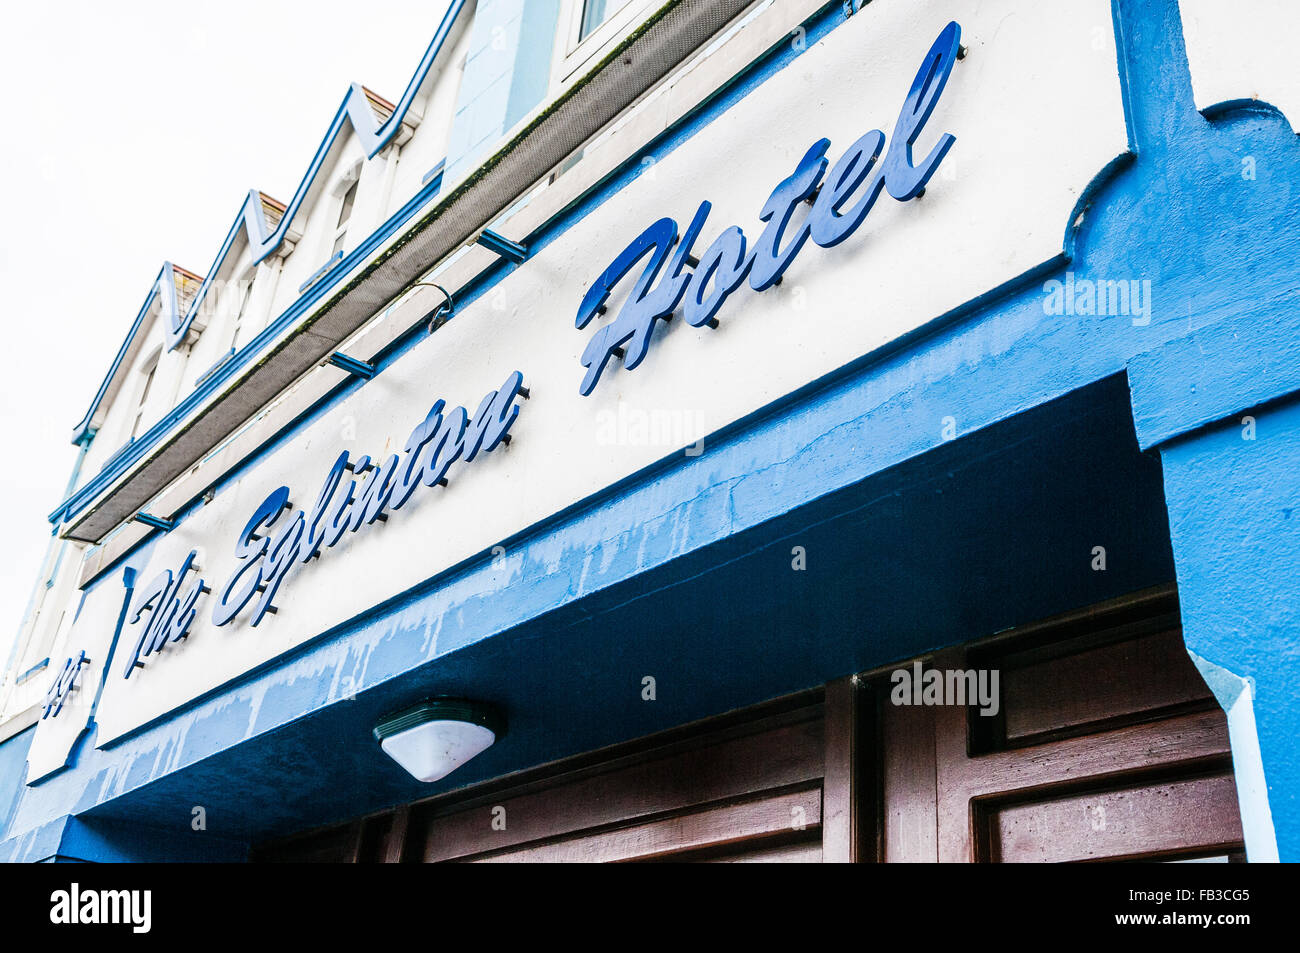 The Eglinton Hotel, Portrush, infamous for being reported by the Belfast Telegraph as the worst hotel in Northern - Stock Image